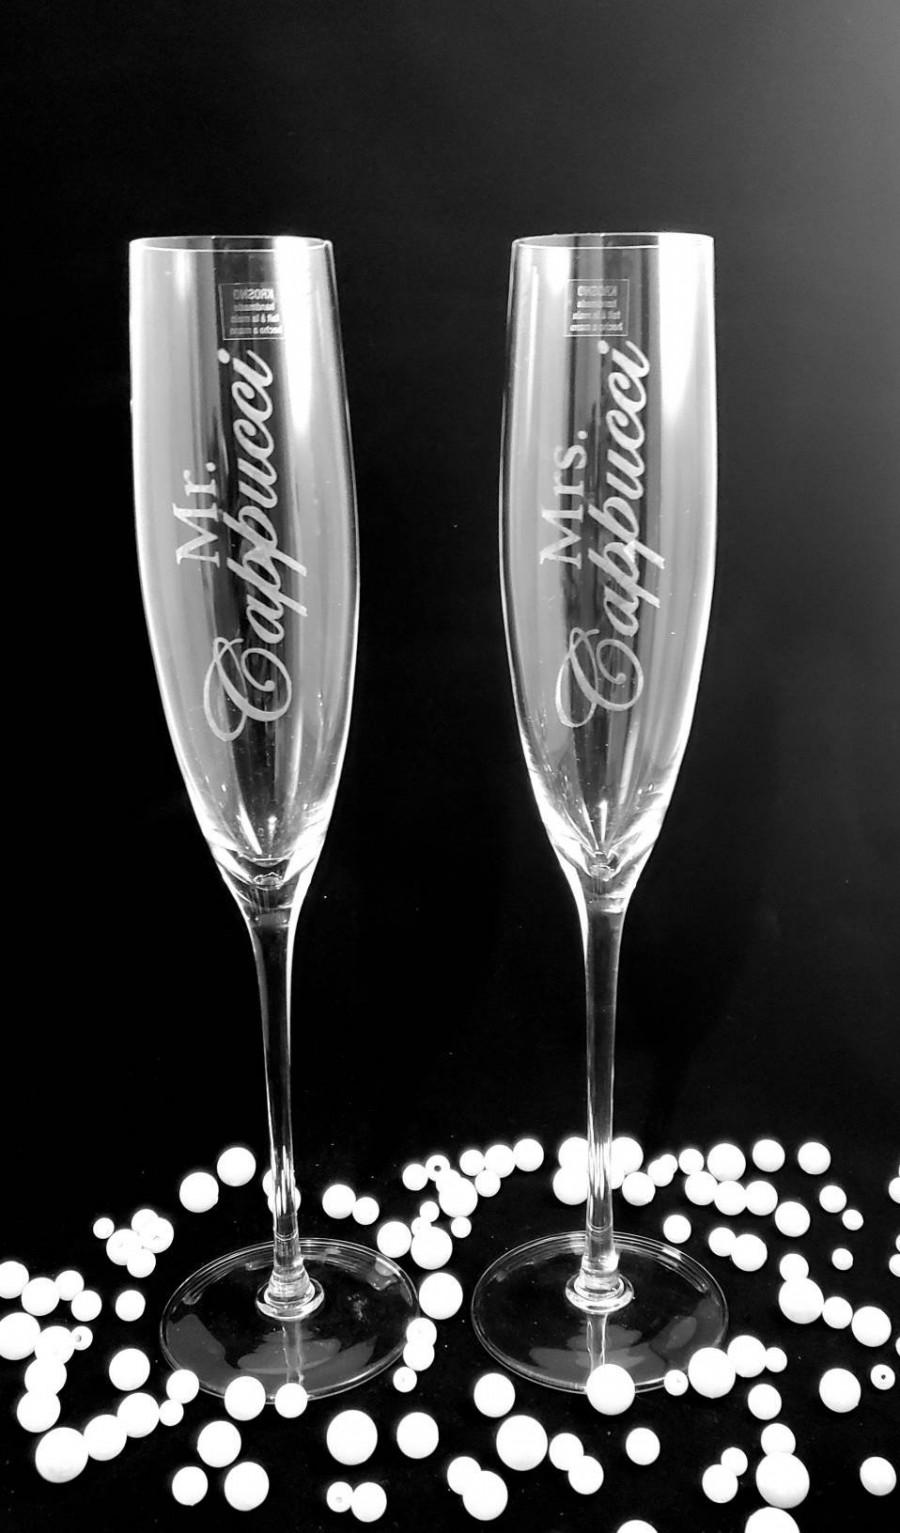 Mariage - Personalized Champagne Flutes Wedding, Unique Wedding Gift for Couple, Mr and Mrs Champagne Flutes, Engagement Gift, His and Hers Gifts Best